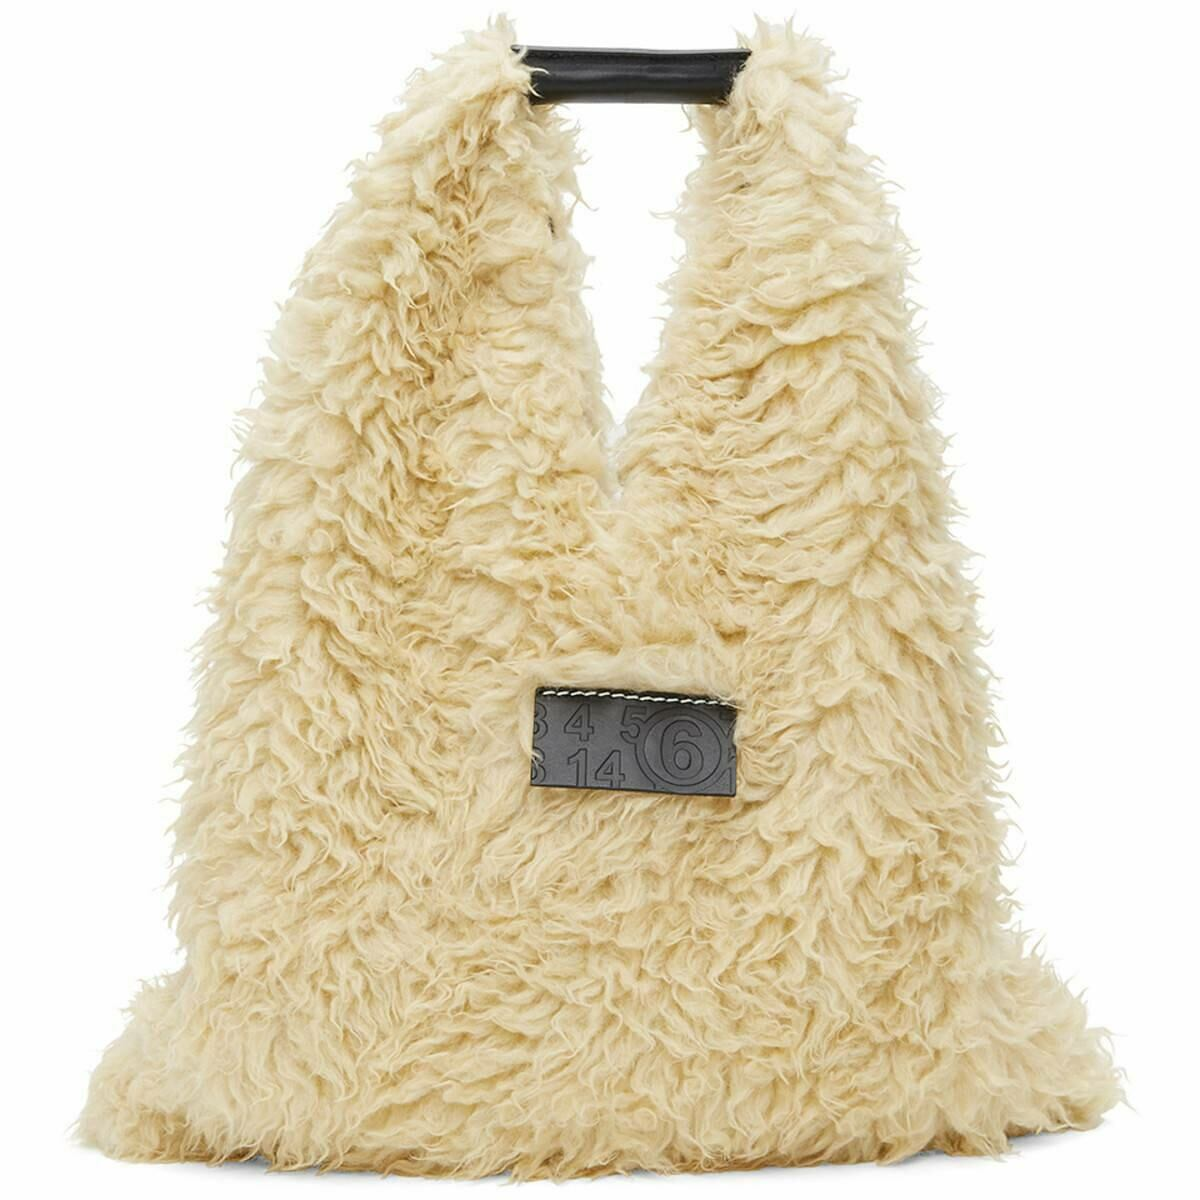 MM6 Maison Margiela Off-White Sherpa Small Triangle Tote Ssense USA WOMEN Women ACCESSORIES Womens BAGS